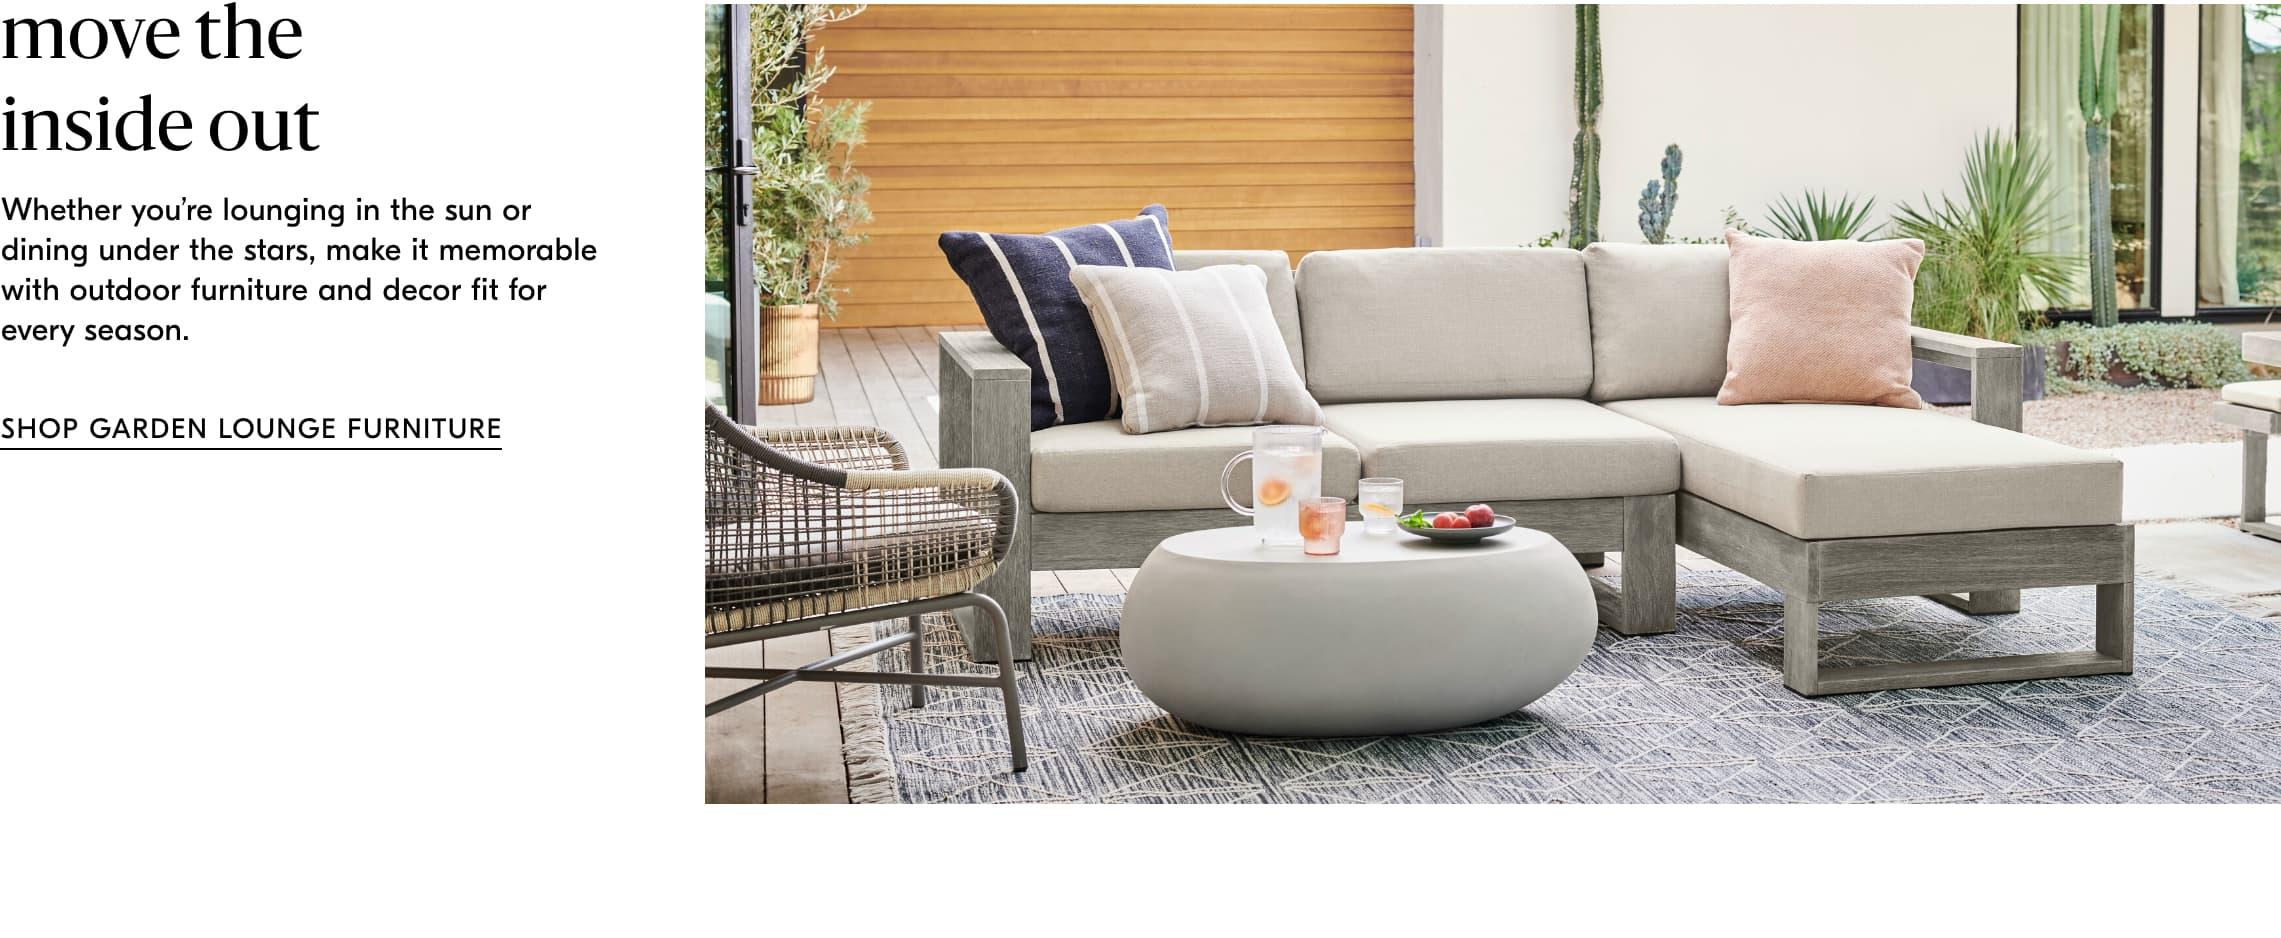 shop garden lounge furniture